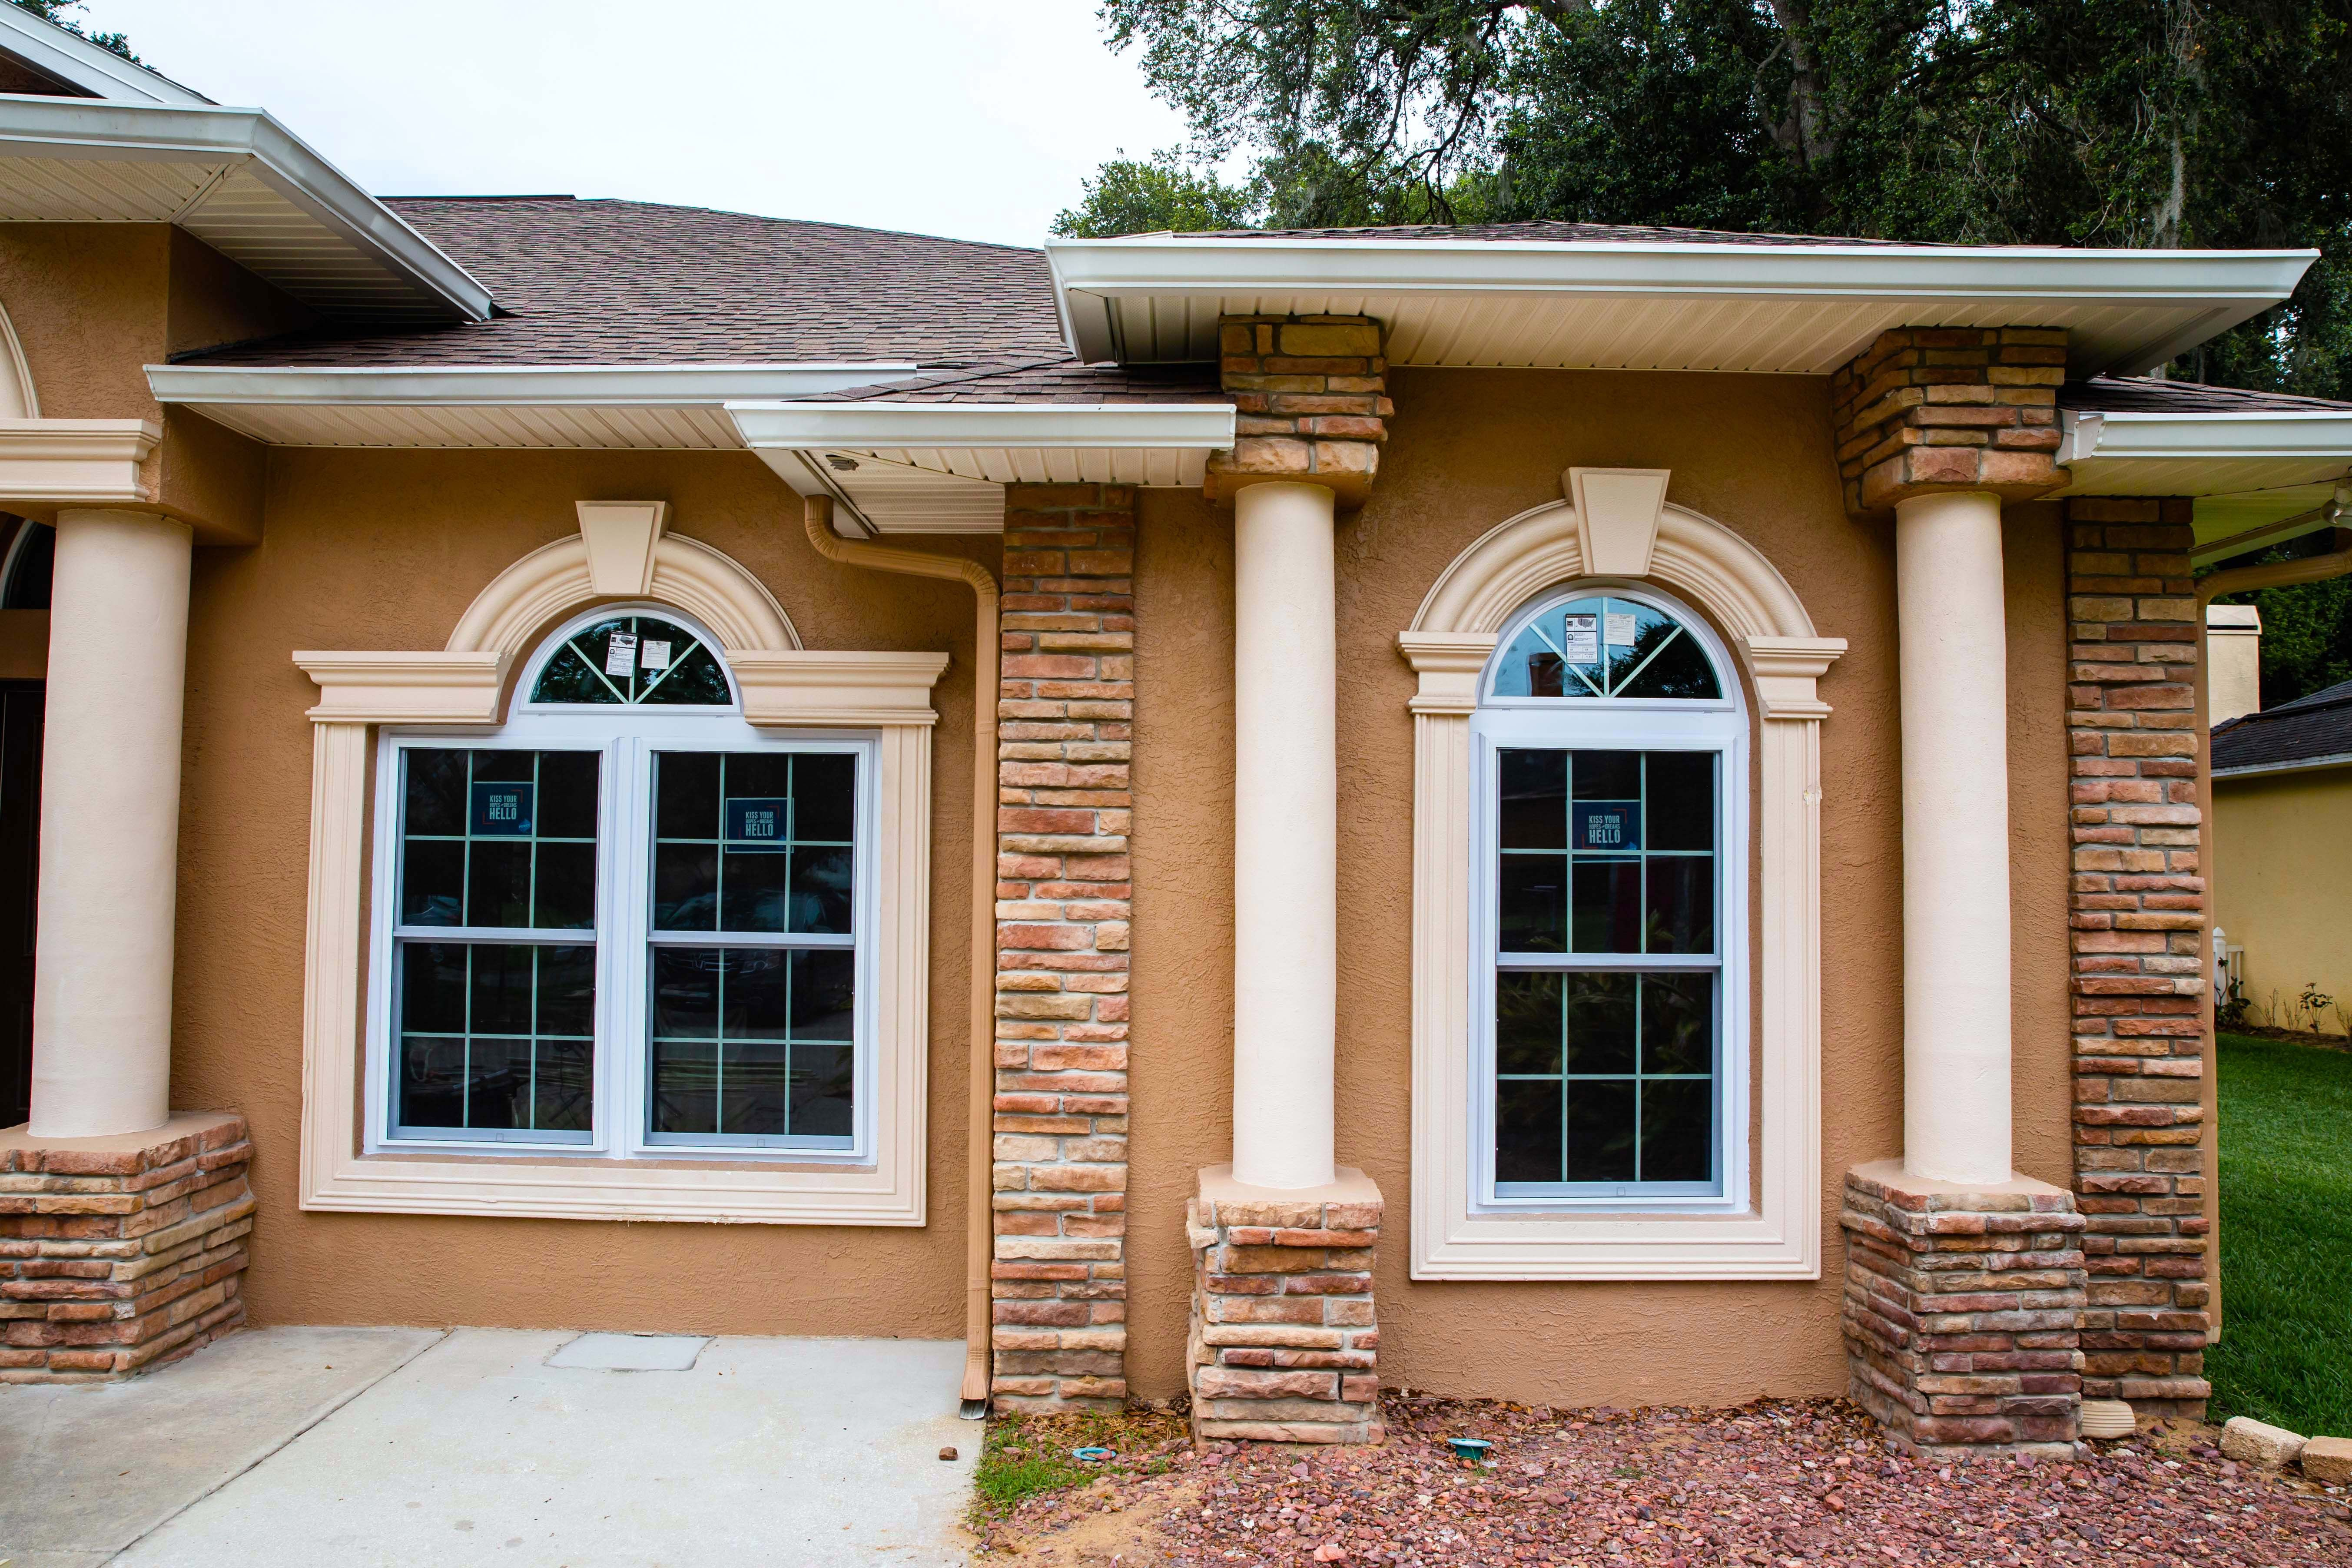 Exterior Crown Molding Around Your Beautiful Windows Can Add Value To Your Home Exterior Windows Crownmolding Hom Windows Exterior Beautiful Homes Windows